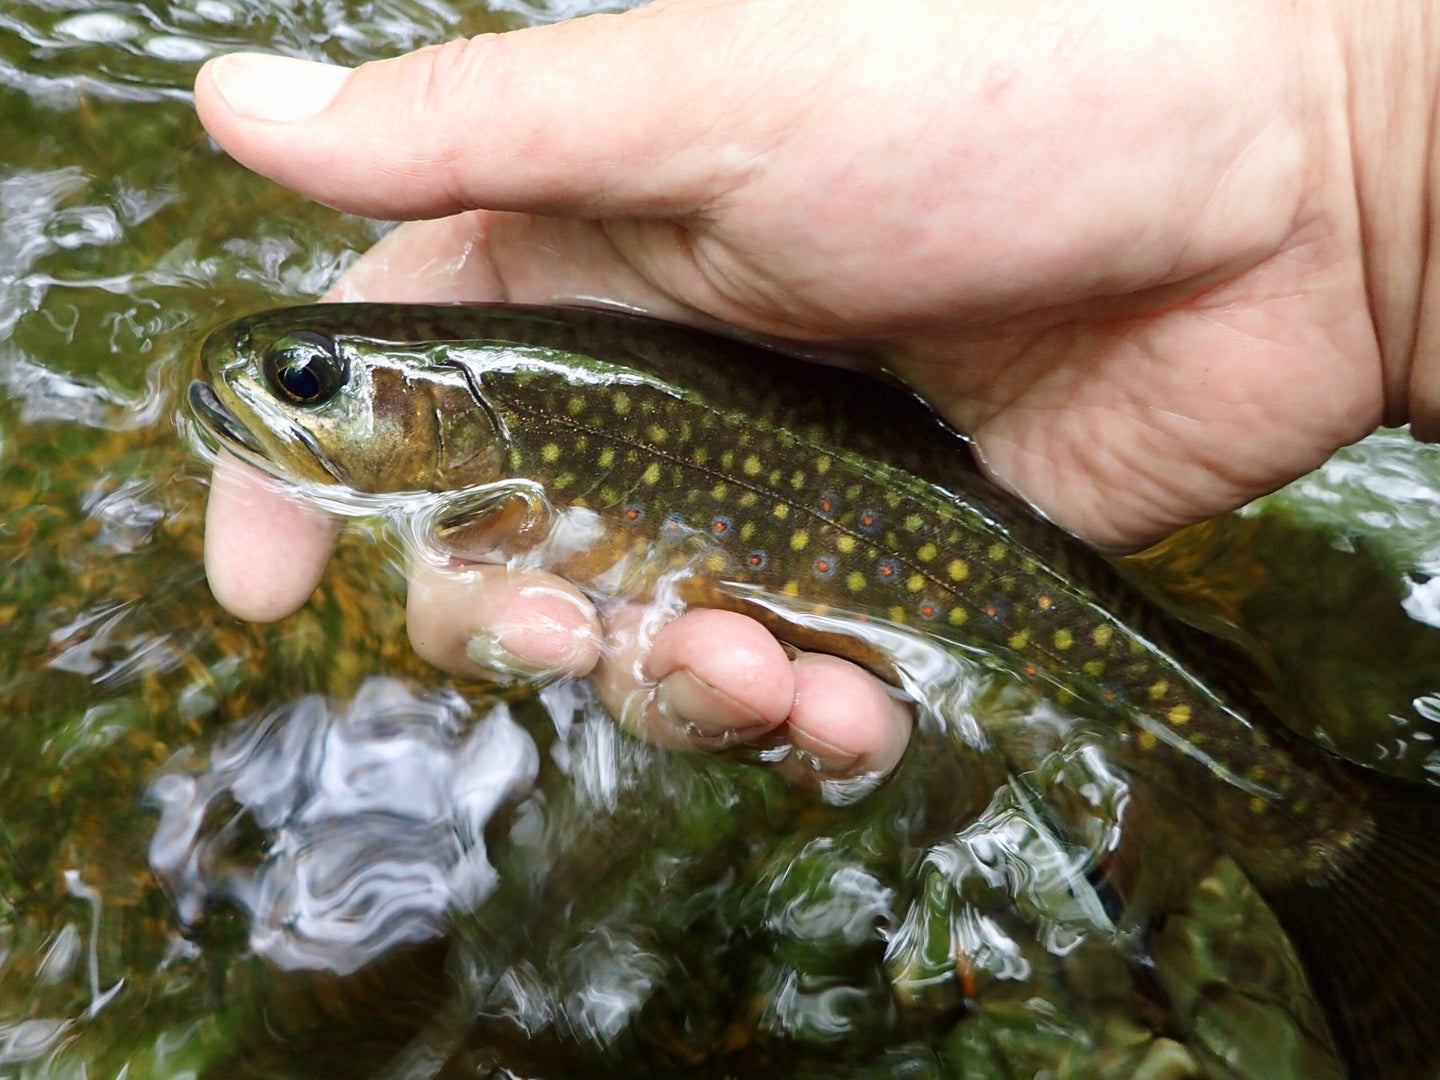 A brook trout being held above the water.